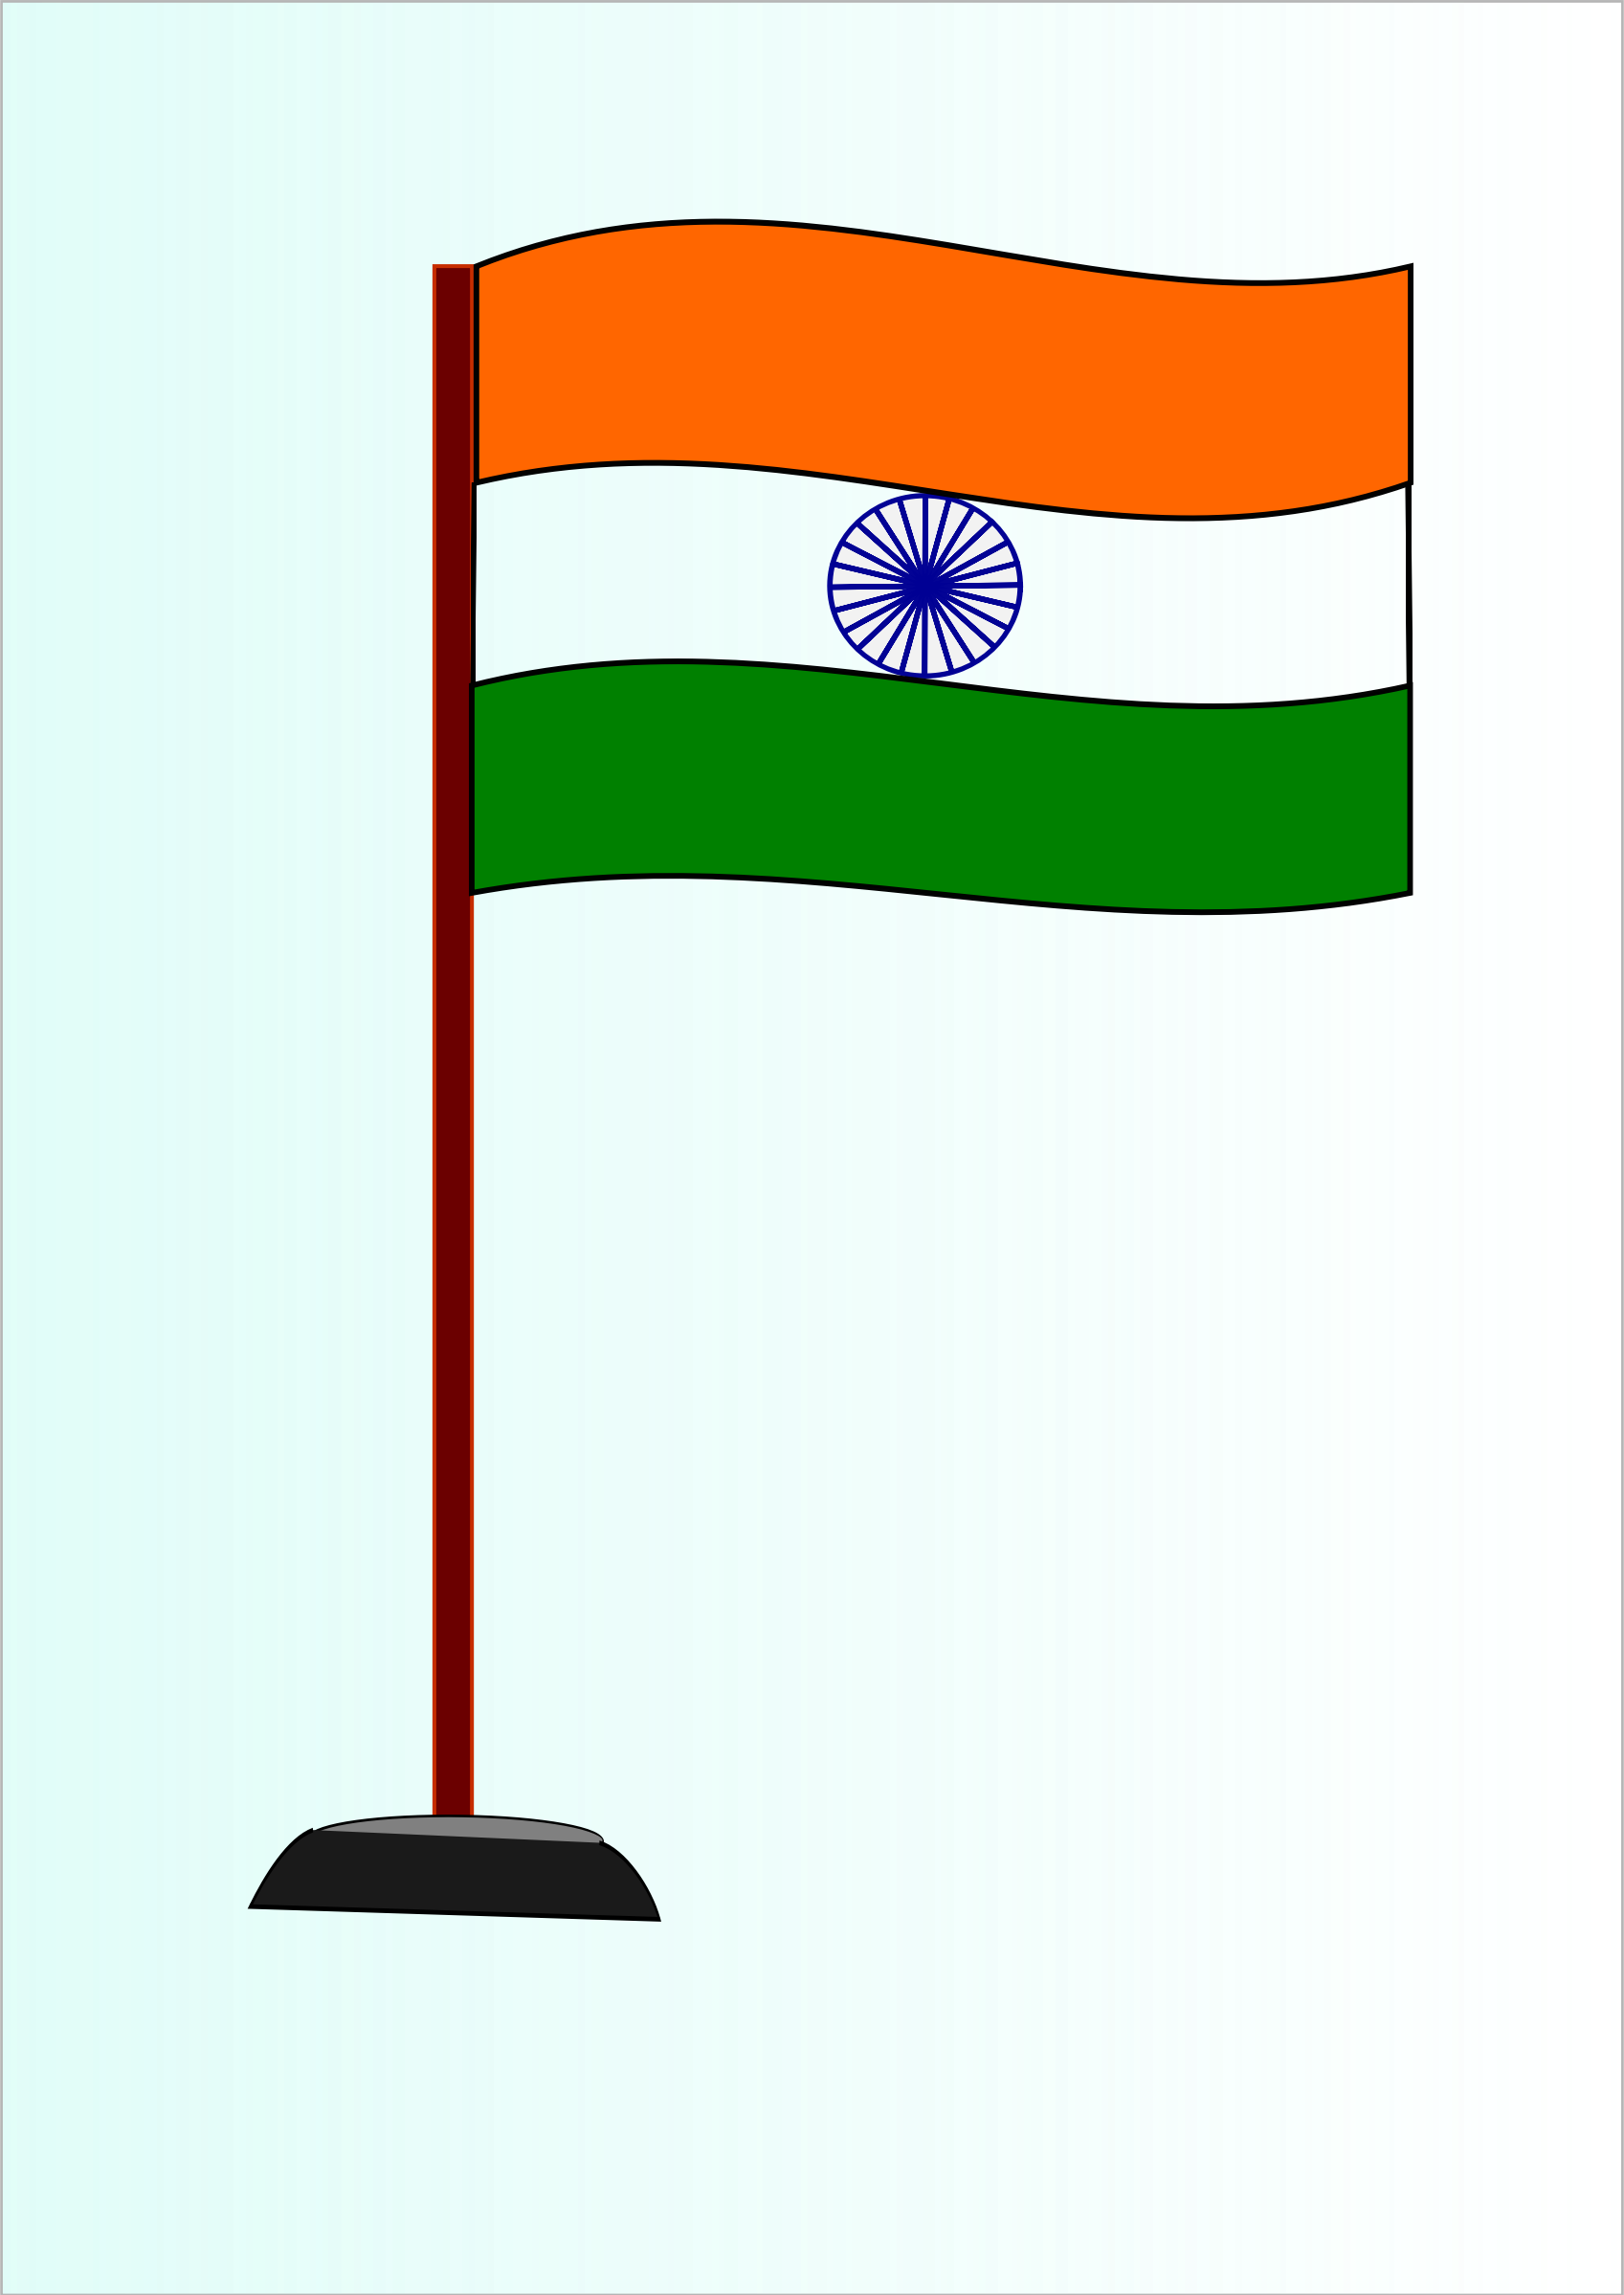 Rectangle free on dumielauxepices. Wheel clipart flag indian